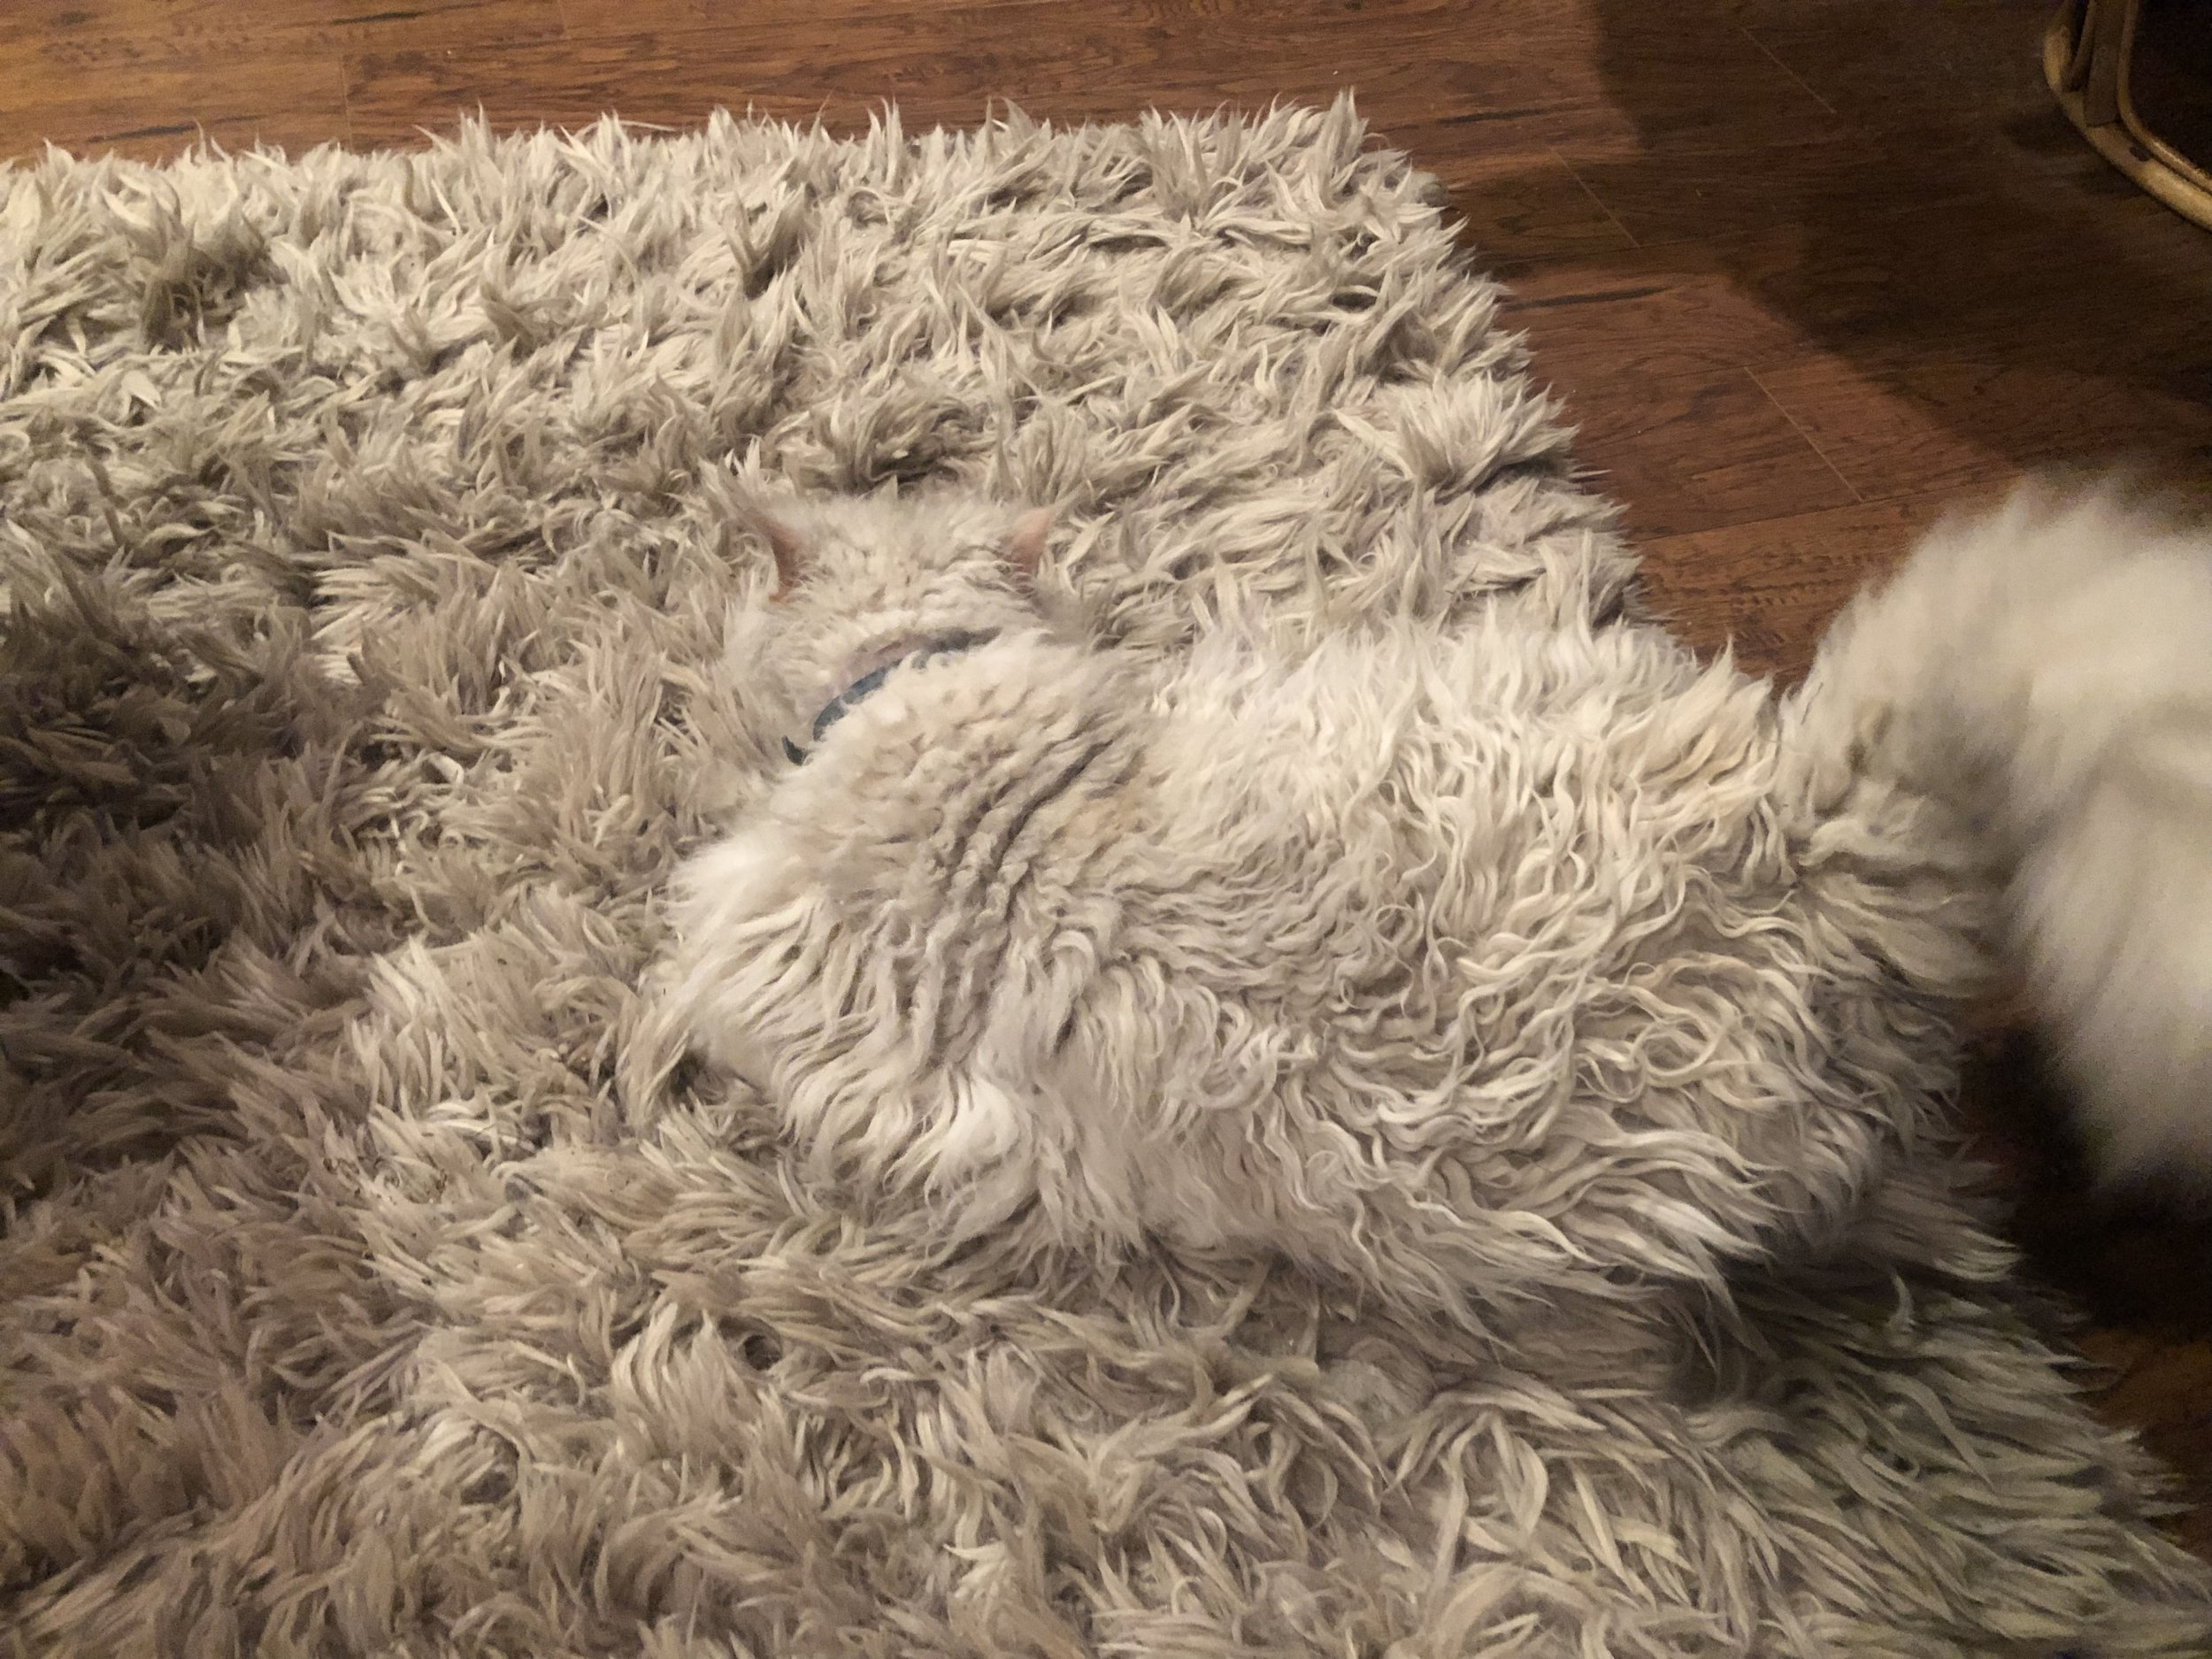 Can anyone find where the cat is on this rug?